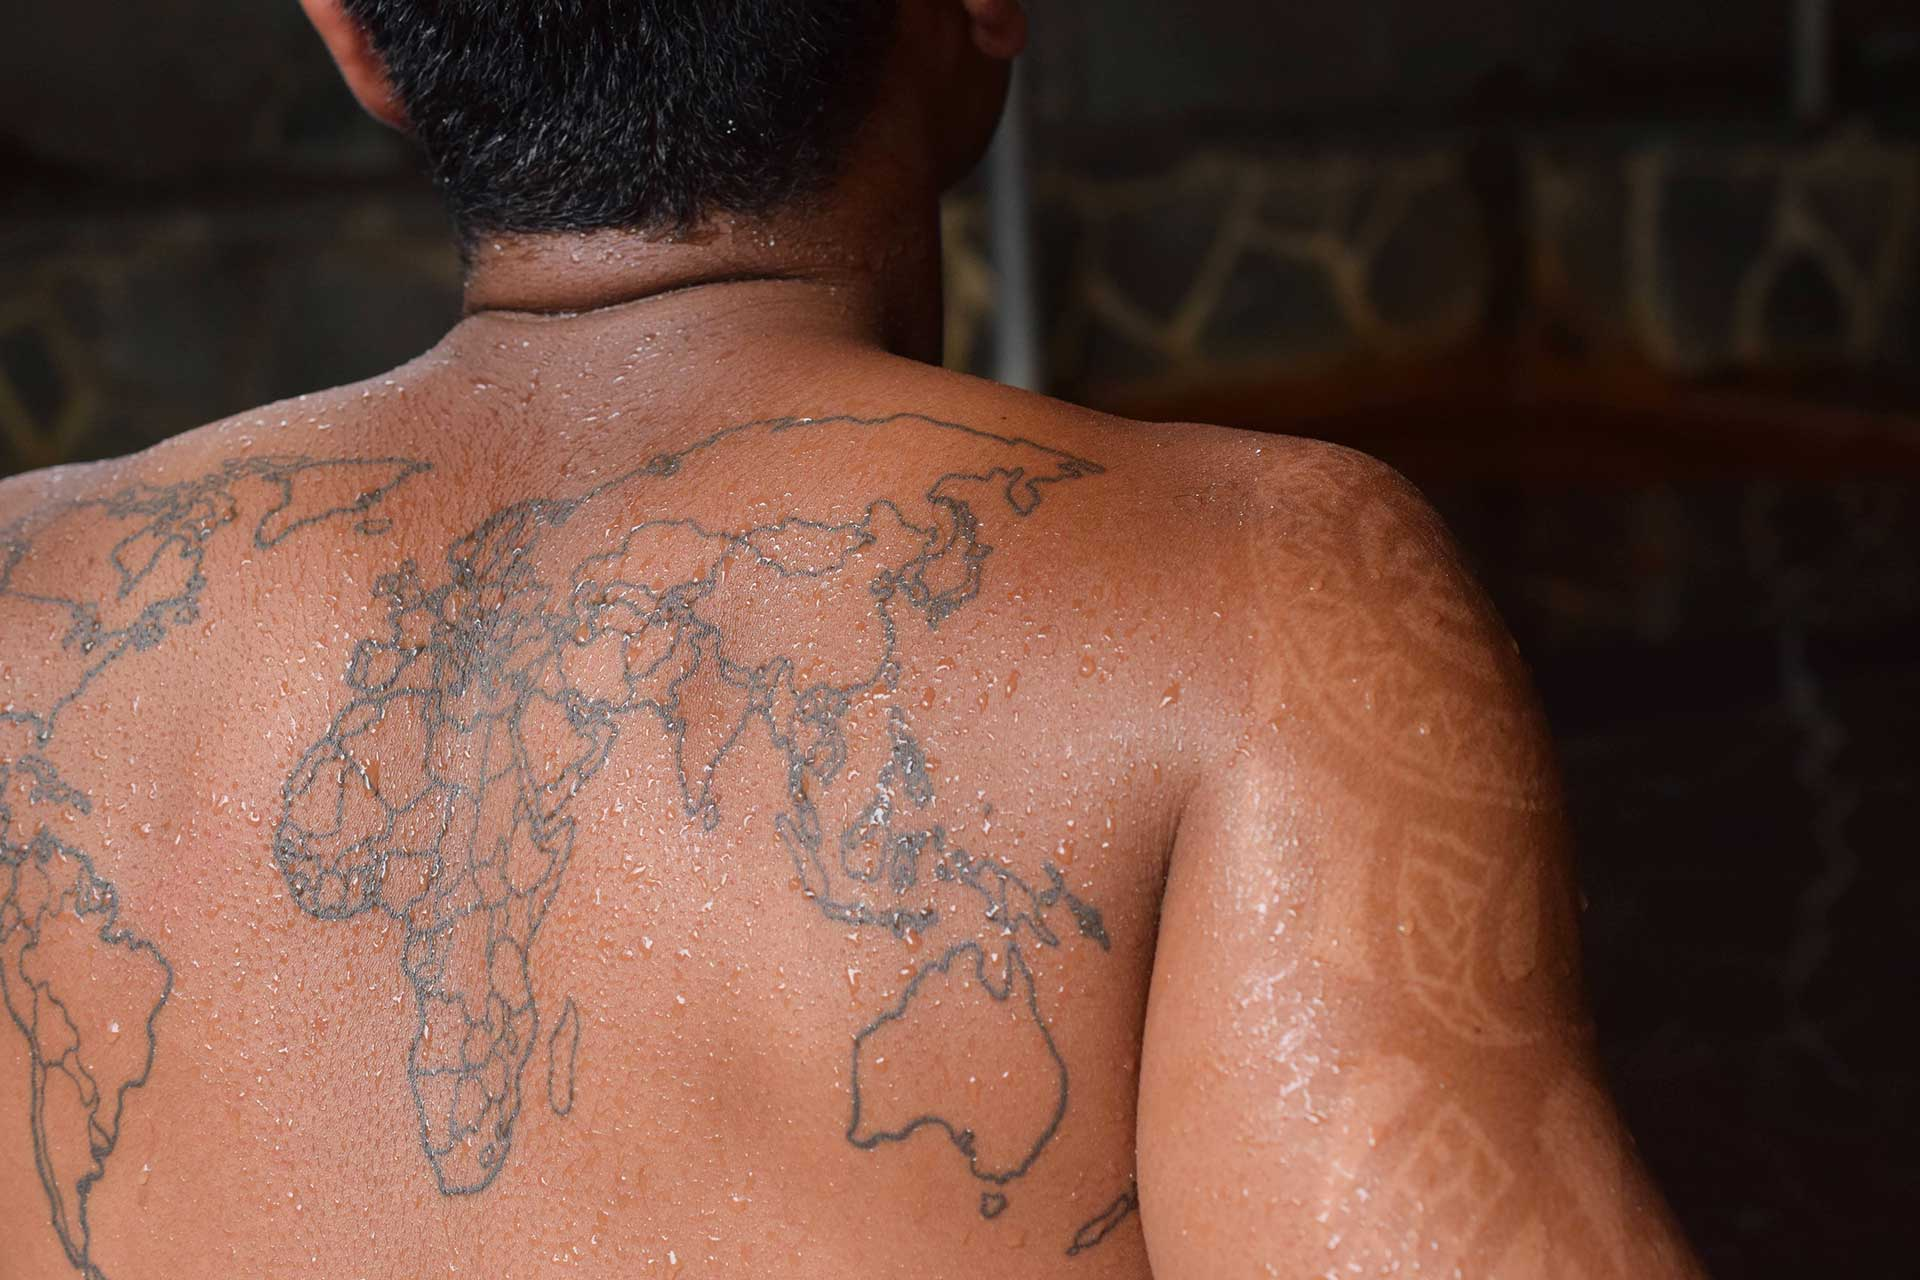 man with tattoo at Beppu Japanese hot spring in tattoo friendly onsen